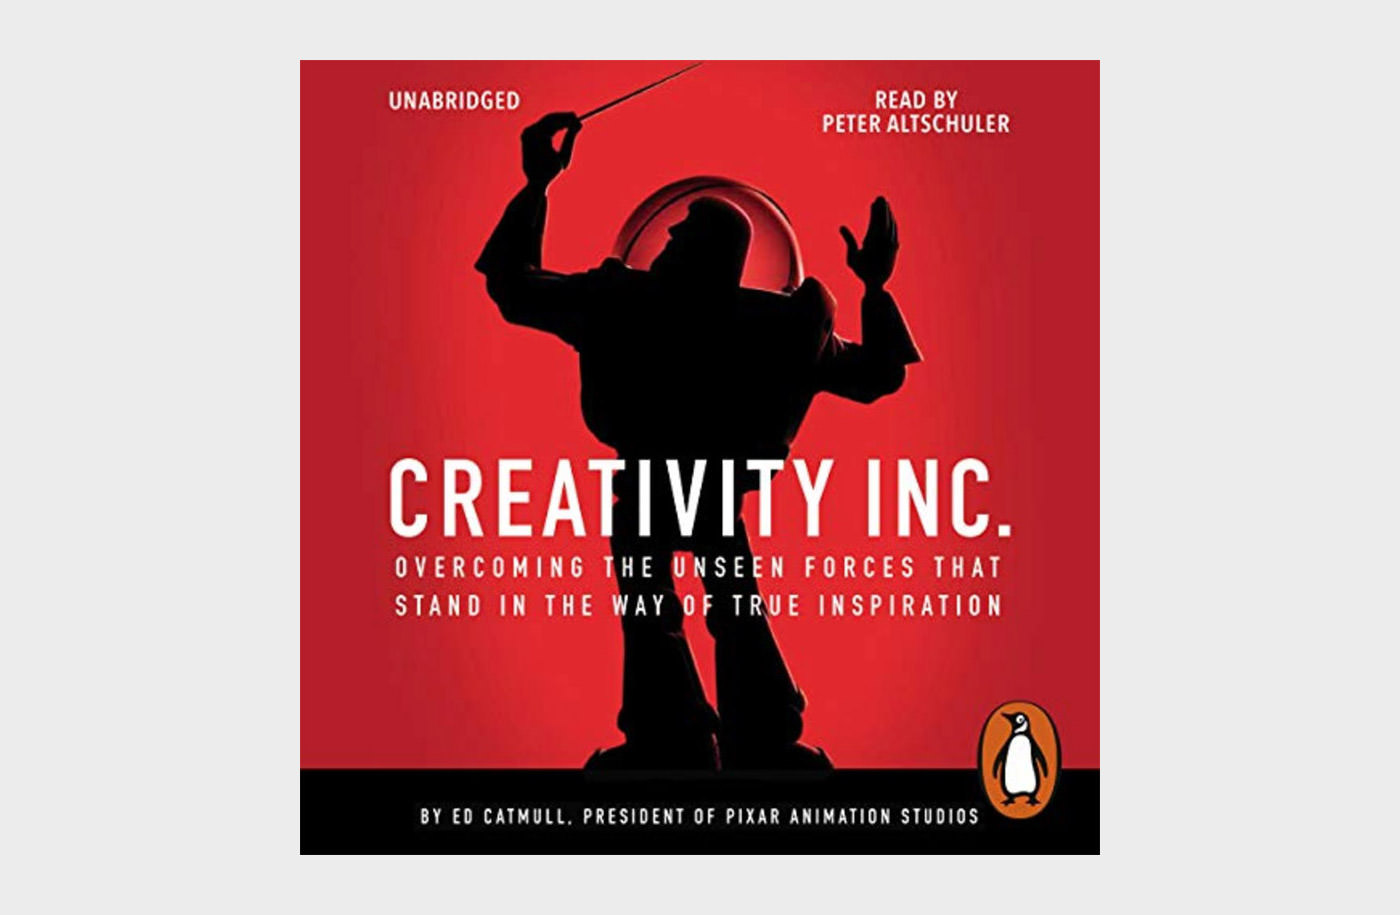 Creativity, Inc.: Overcoming the Unseen Forces That Stand in the Way